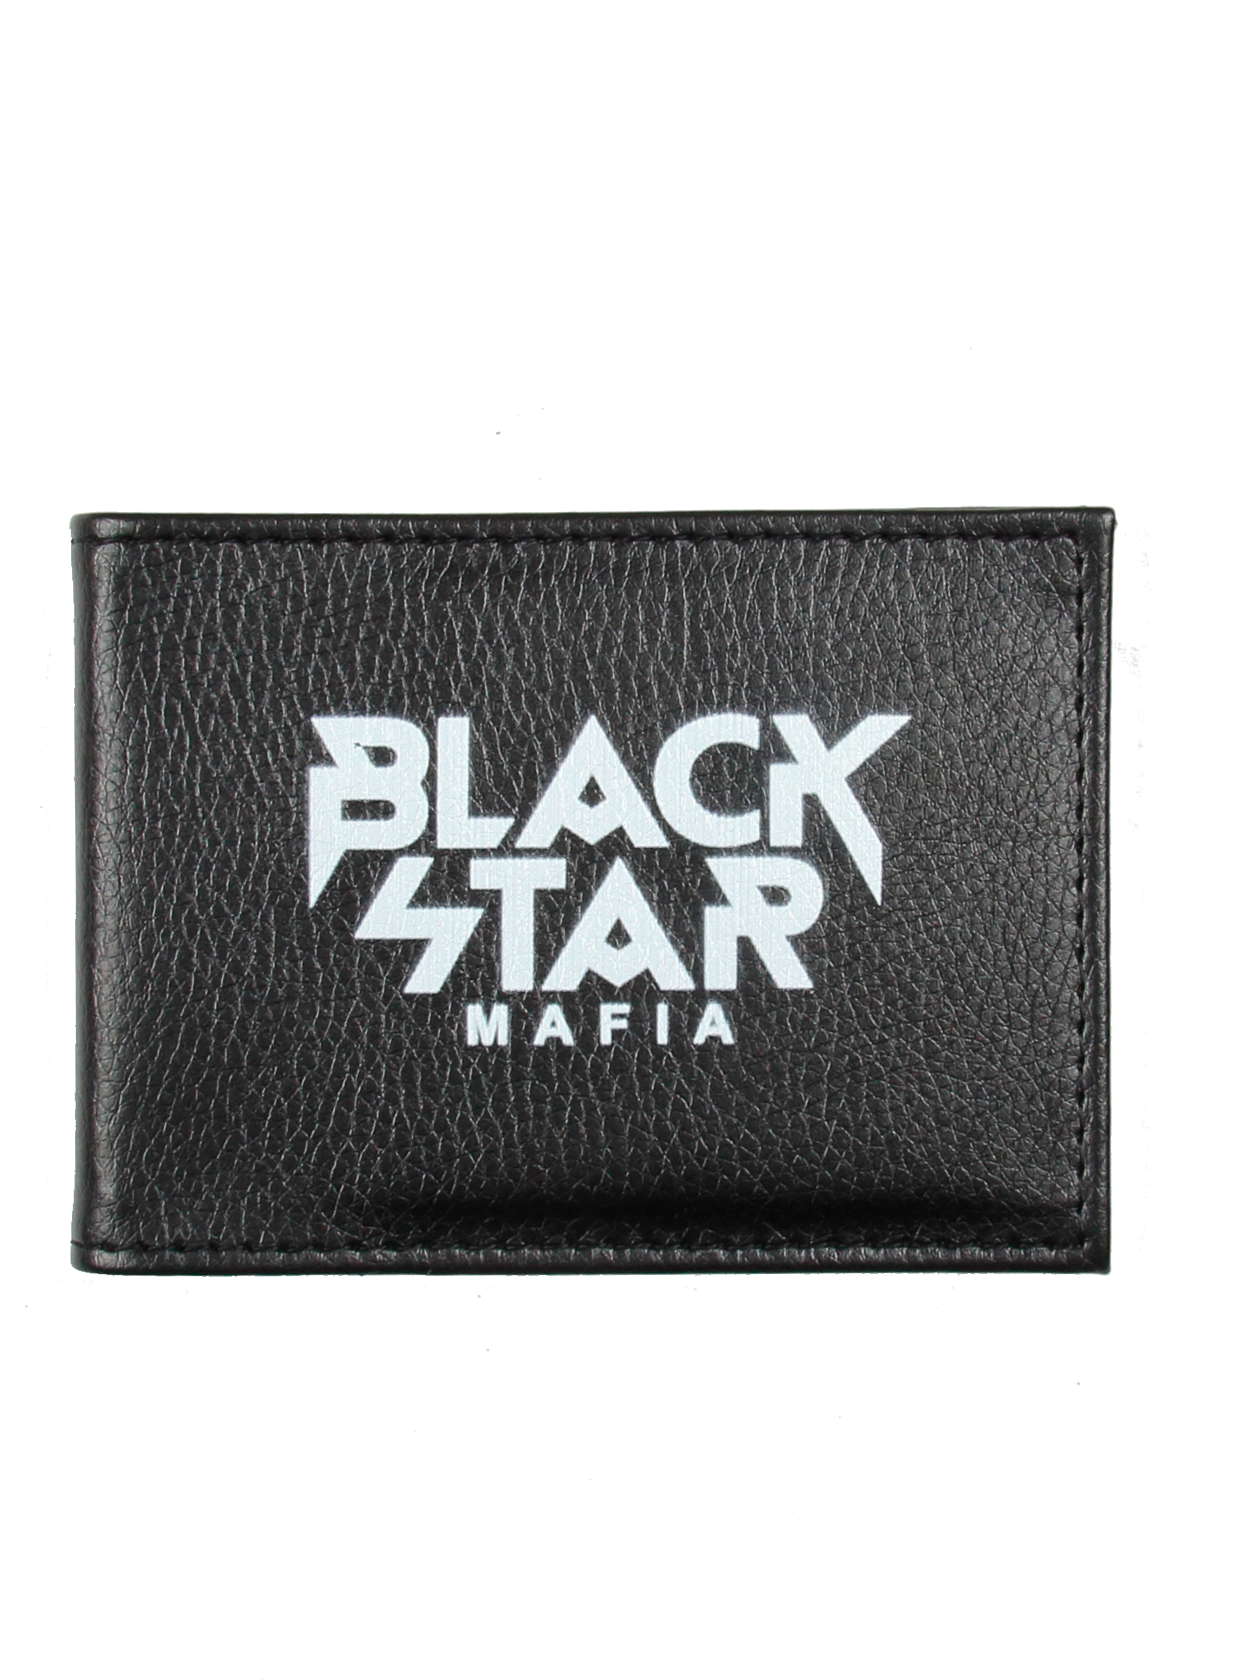 Students ID cover MAFIAStudents ID cover by Black Star Wear. Textured black eco-leather with white Black Star Mafia logo on the front.<br><br>size: One size<br>color: Black<br>gender: unisex